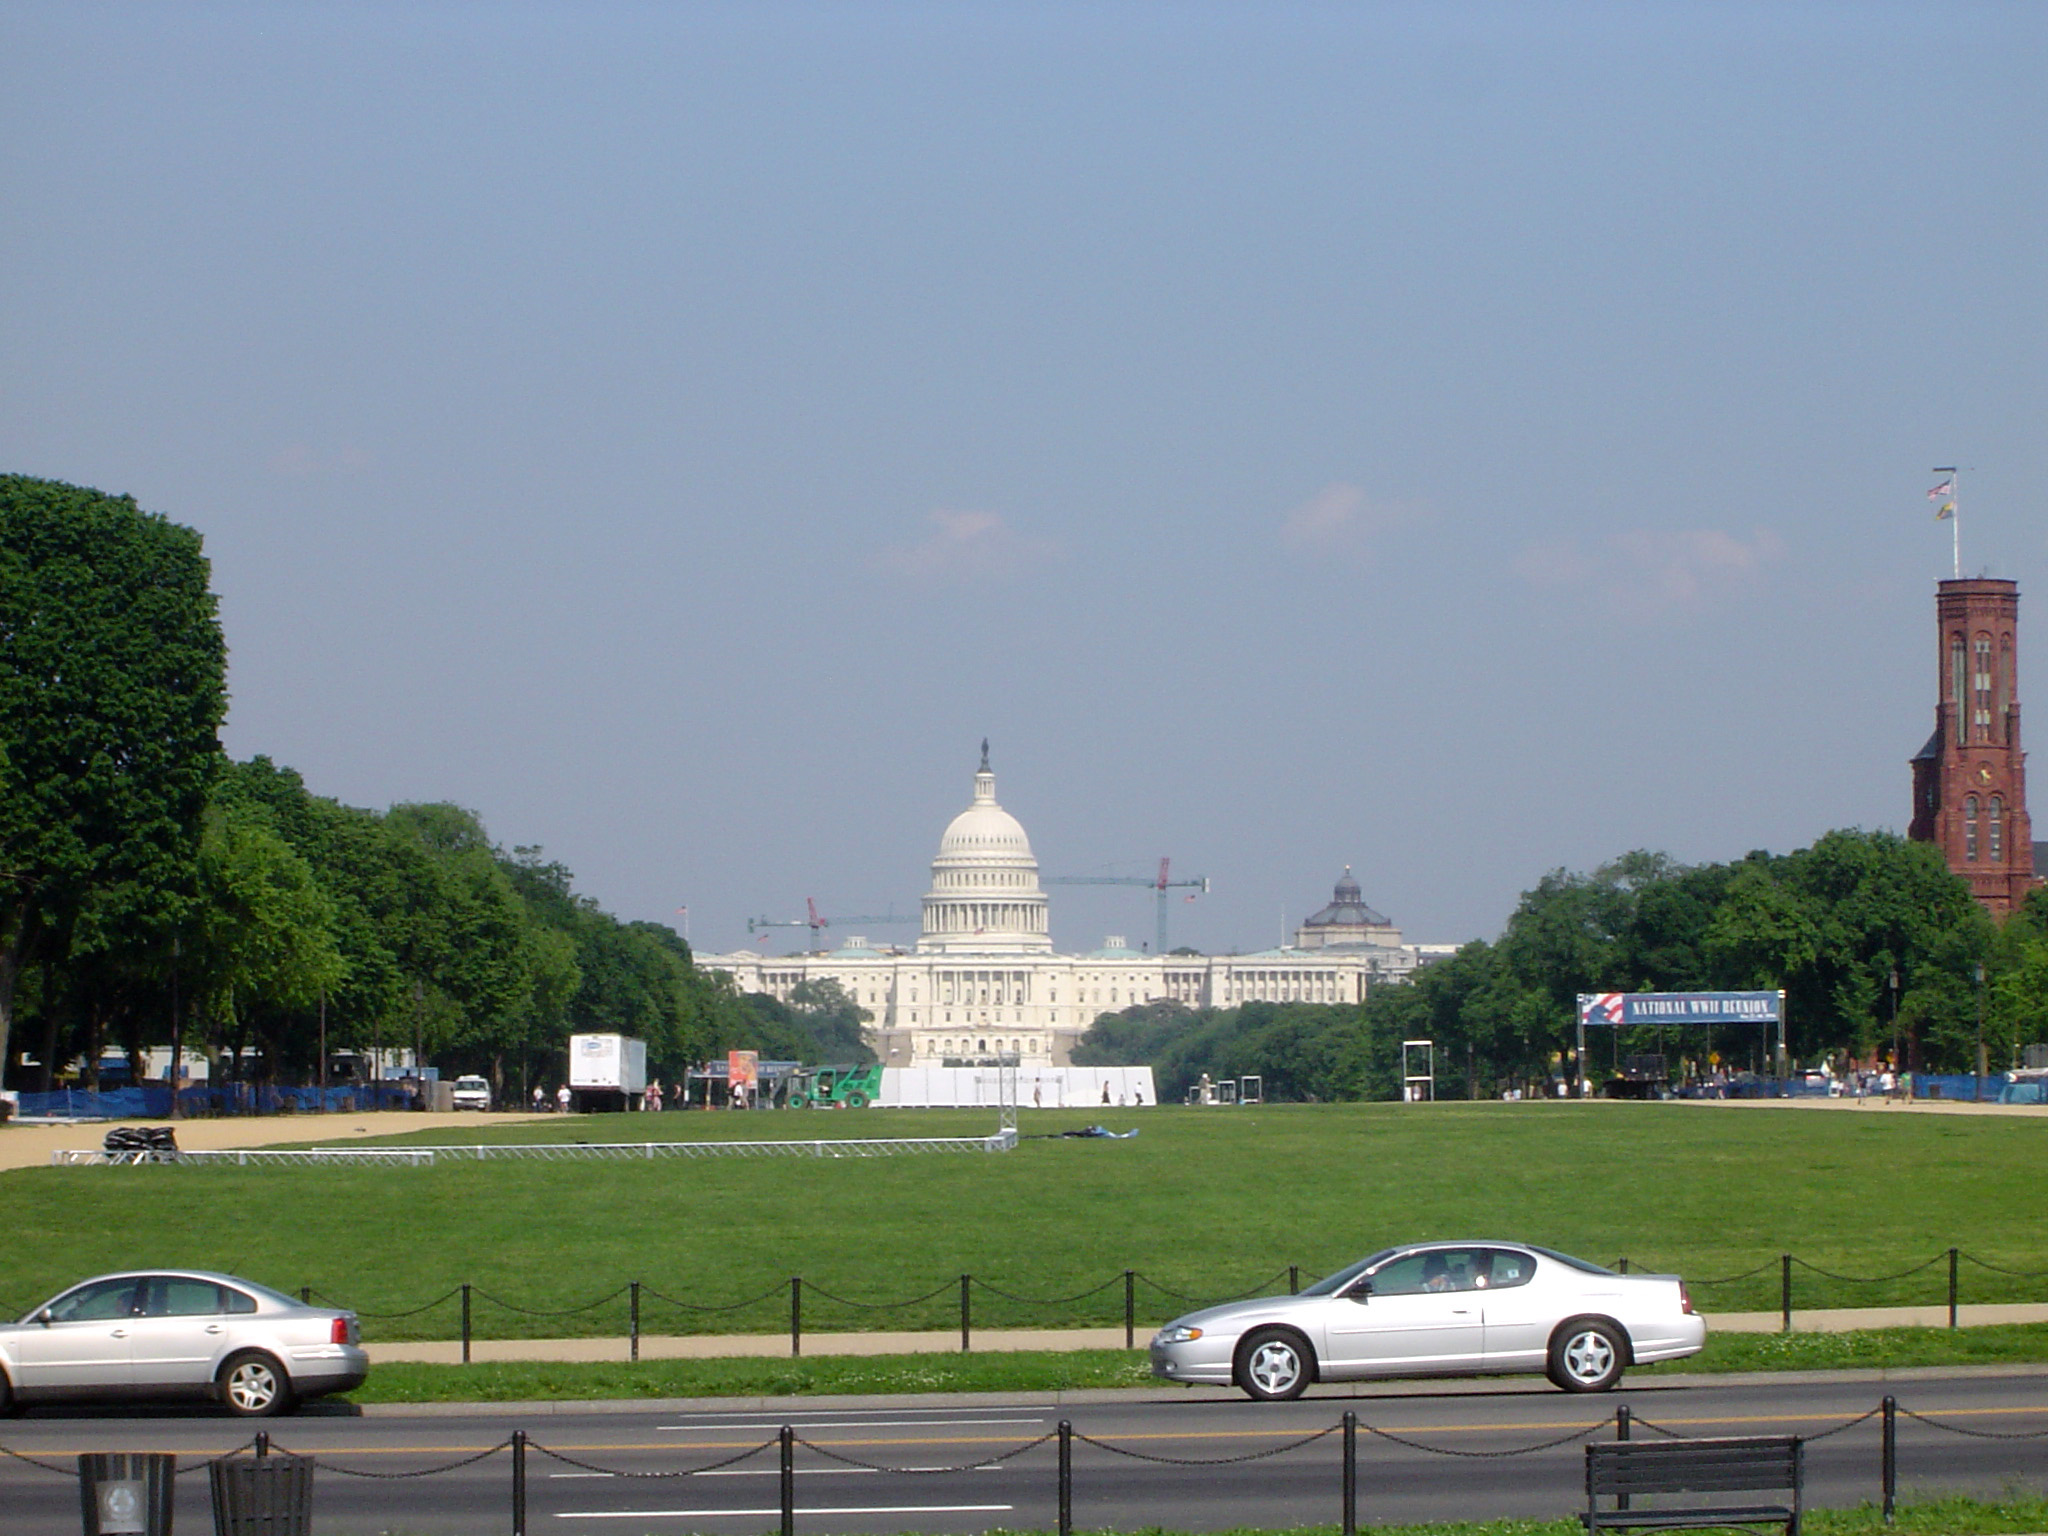 Exterior view of the white domed Capitol Building in Washington, seat of the USA government